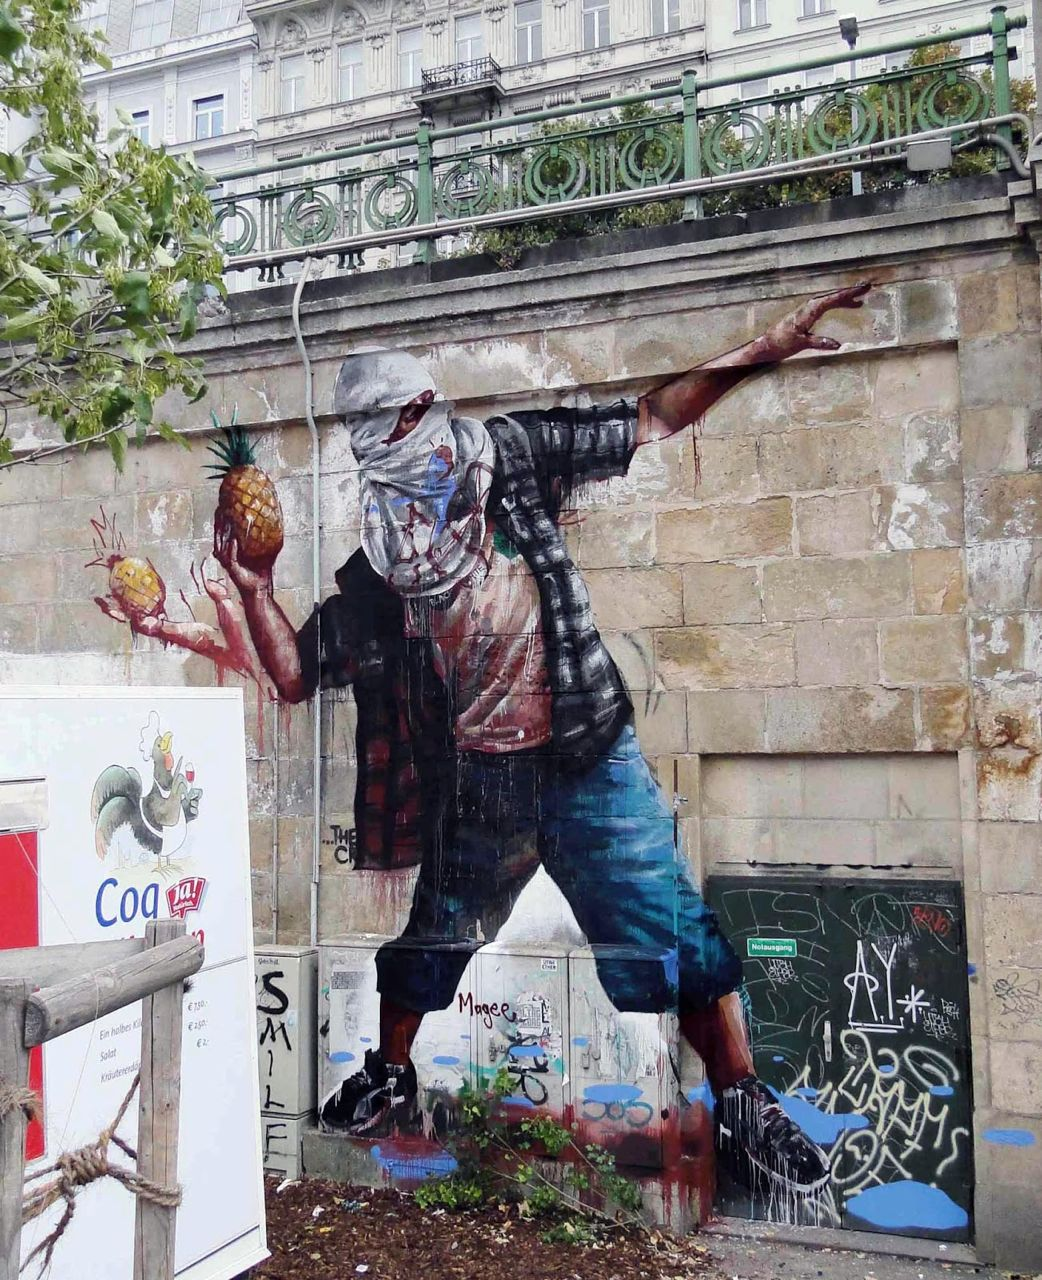 Fintan Magee in Vienna, Austria. Photo via StreetArtNews.